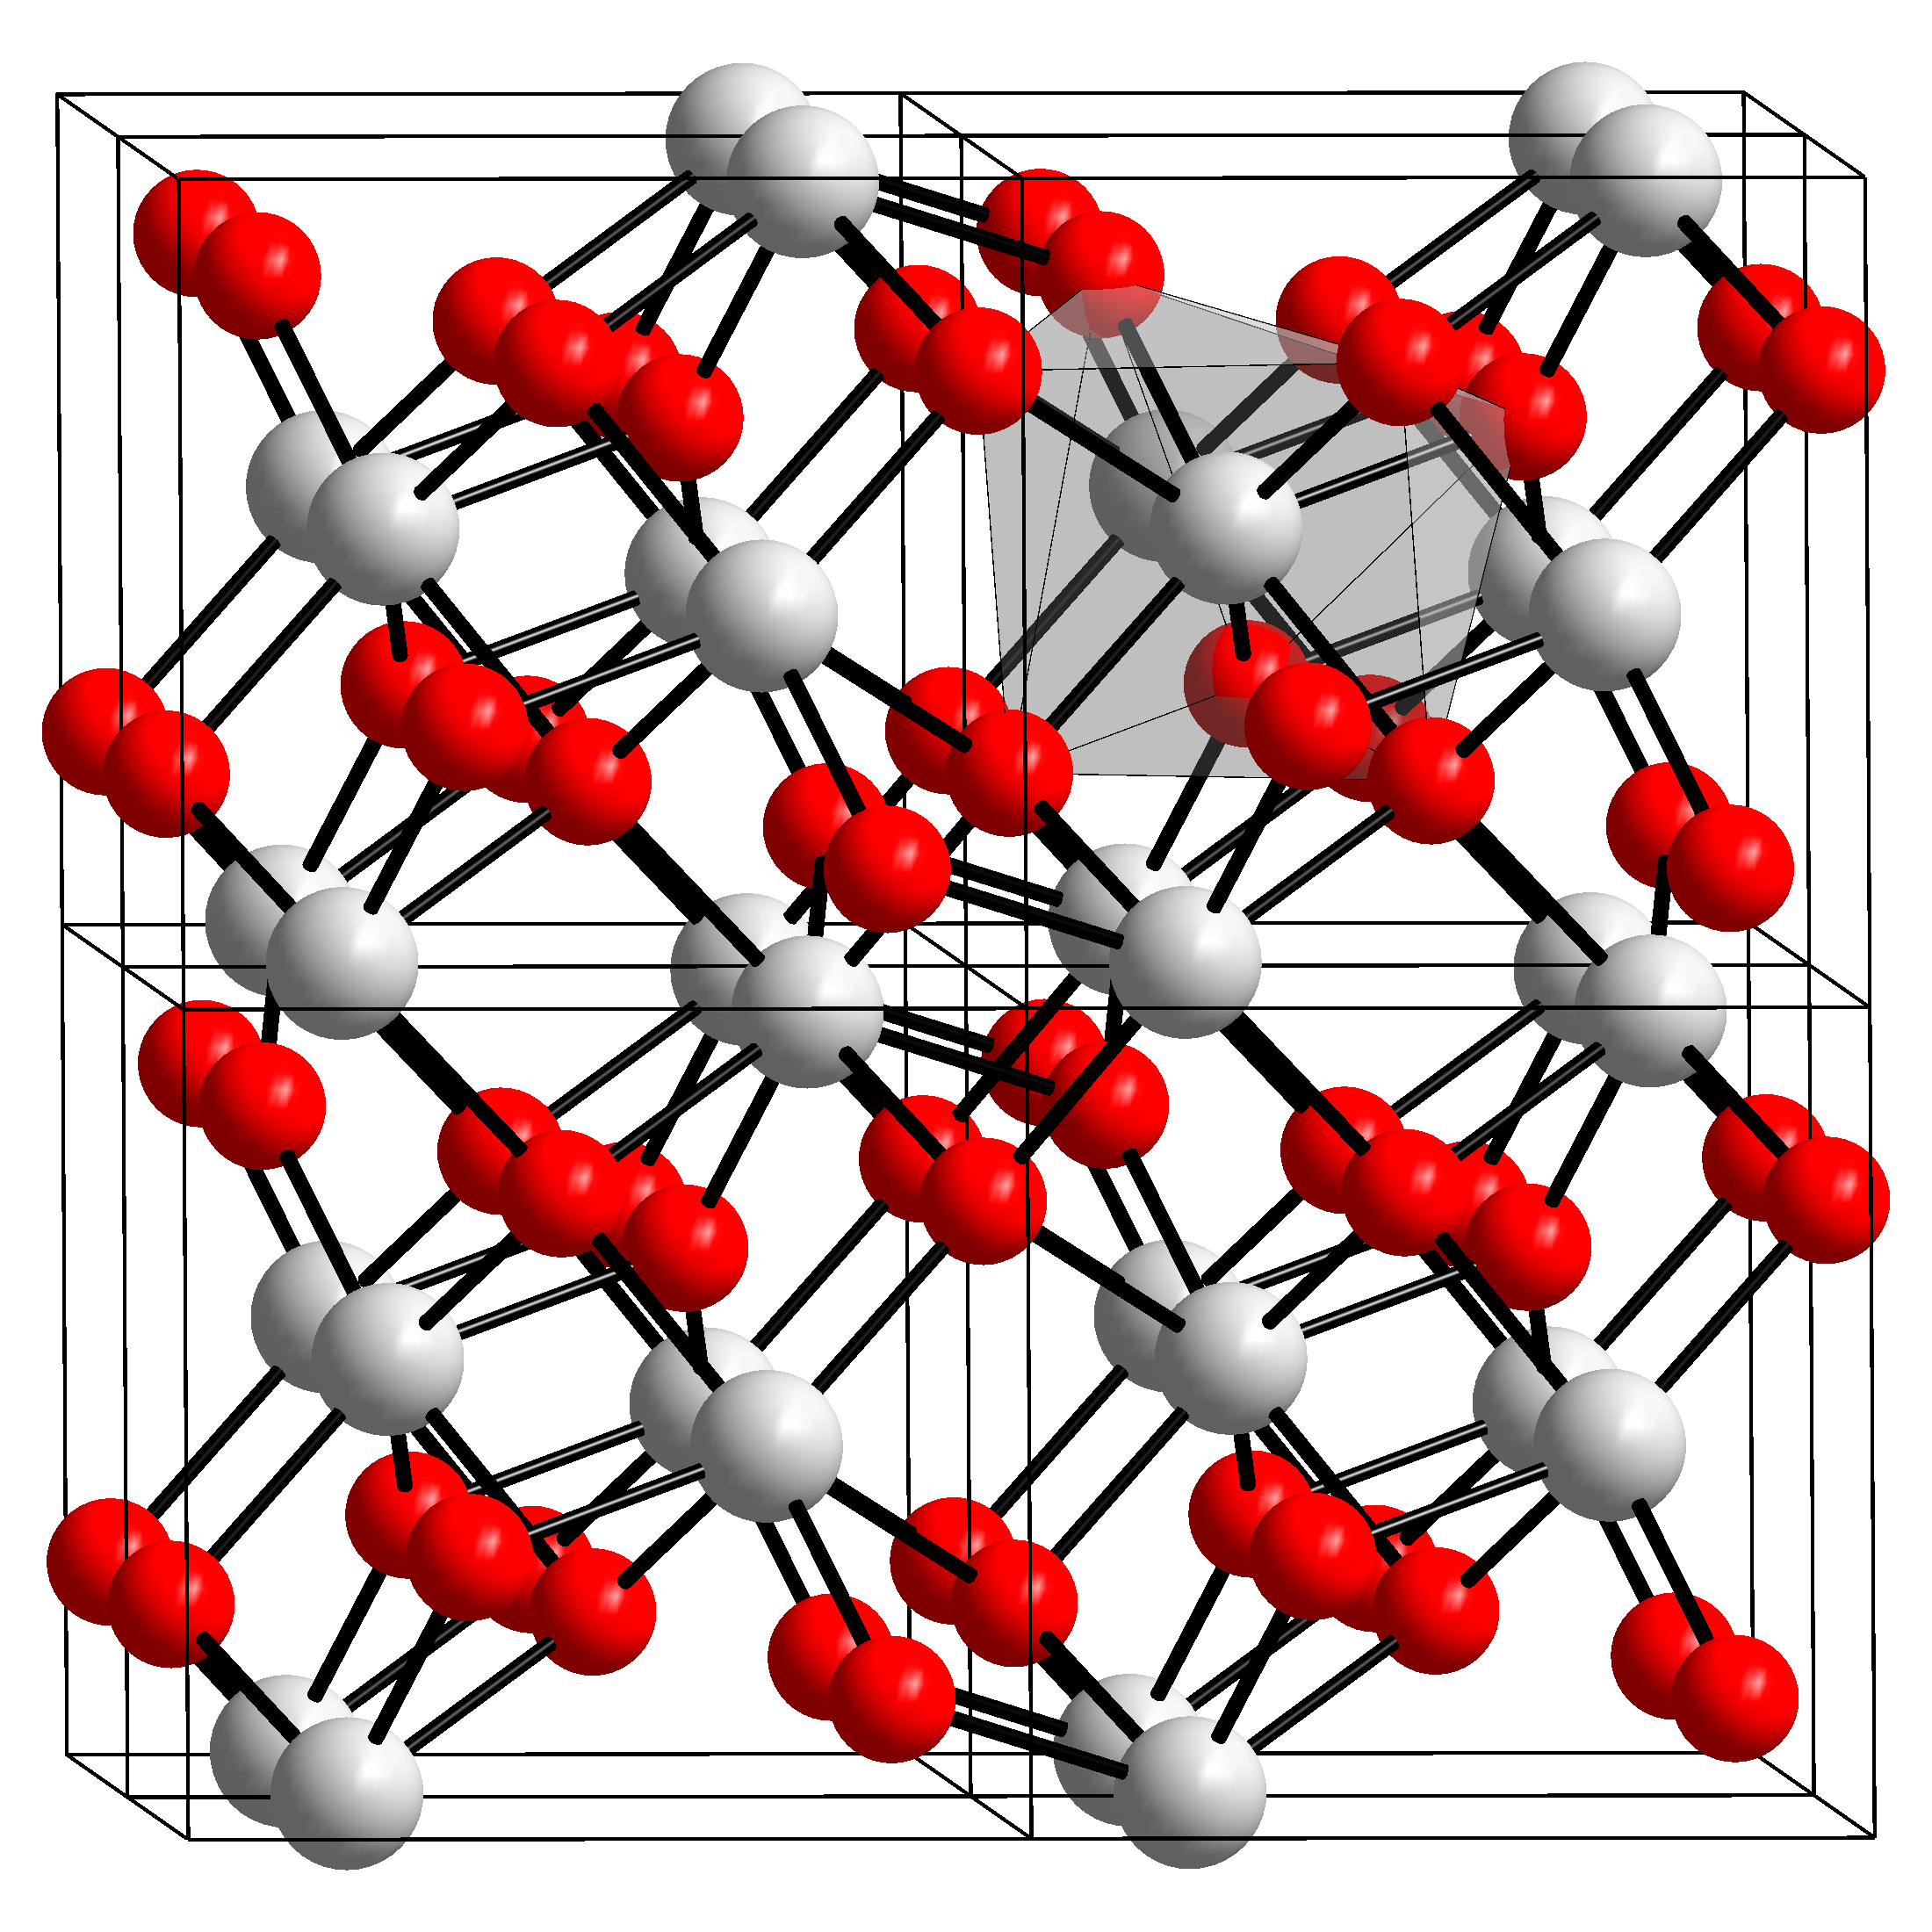 Crystal structure of Zirconia dioxide